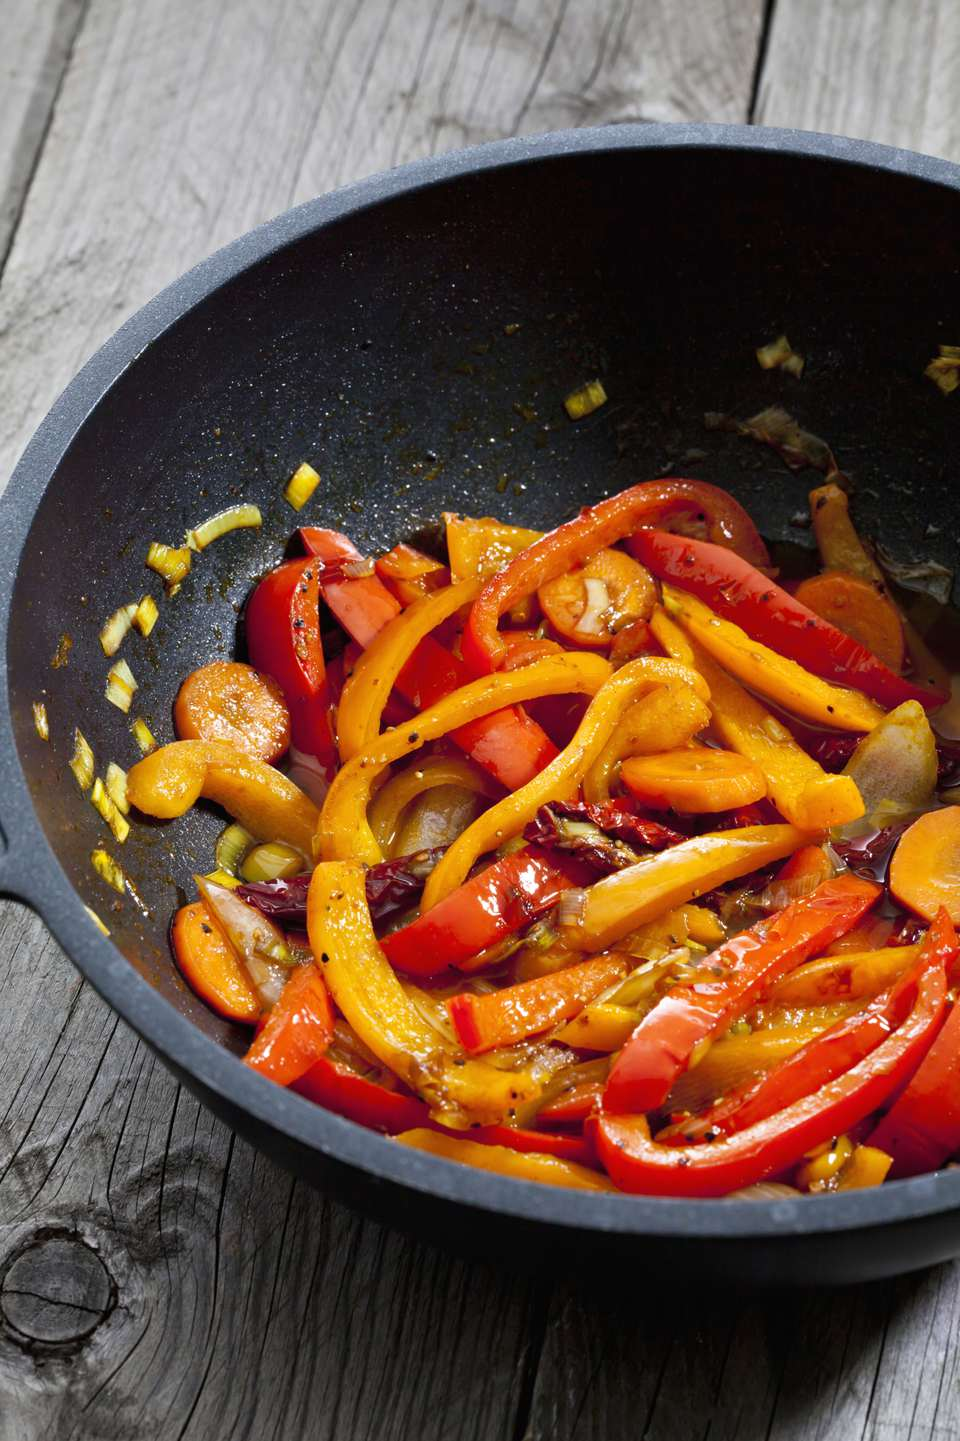 Cooking up some vegetarian bell pepper fajitas